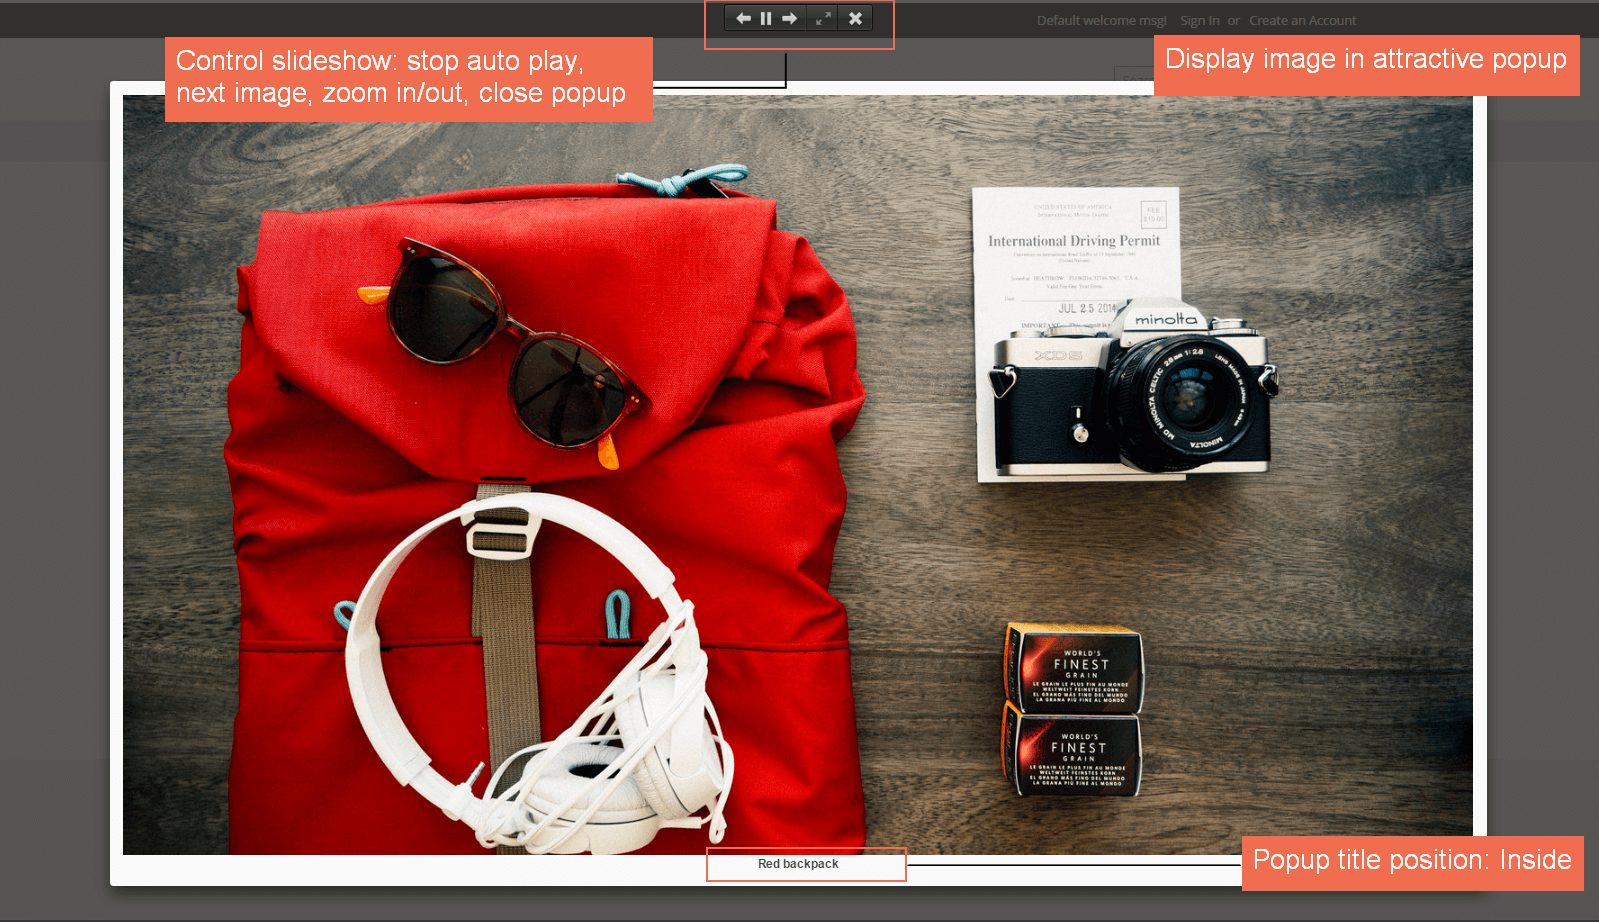 Magento 2 Gallery extension displays image in attractive Popup. Popup title position: Inside